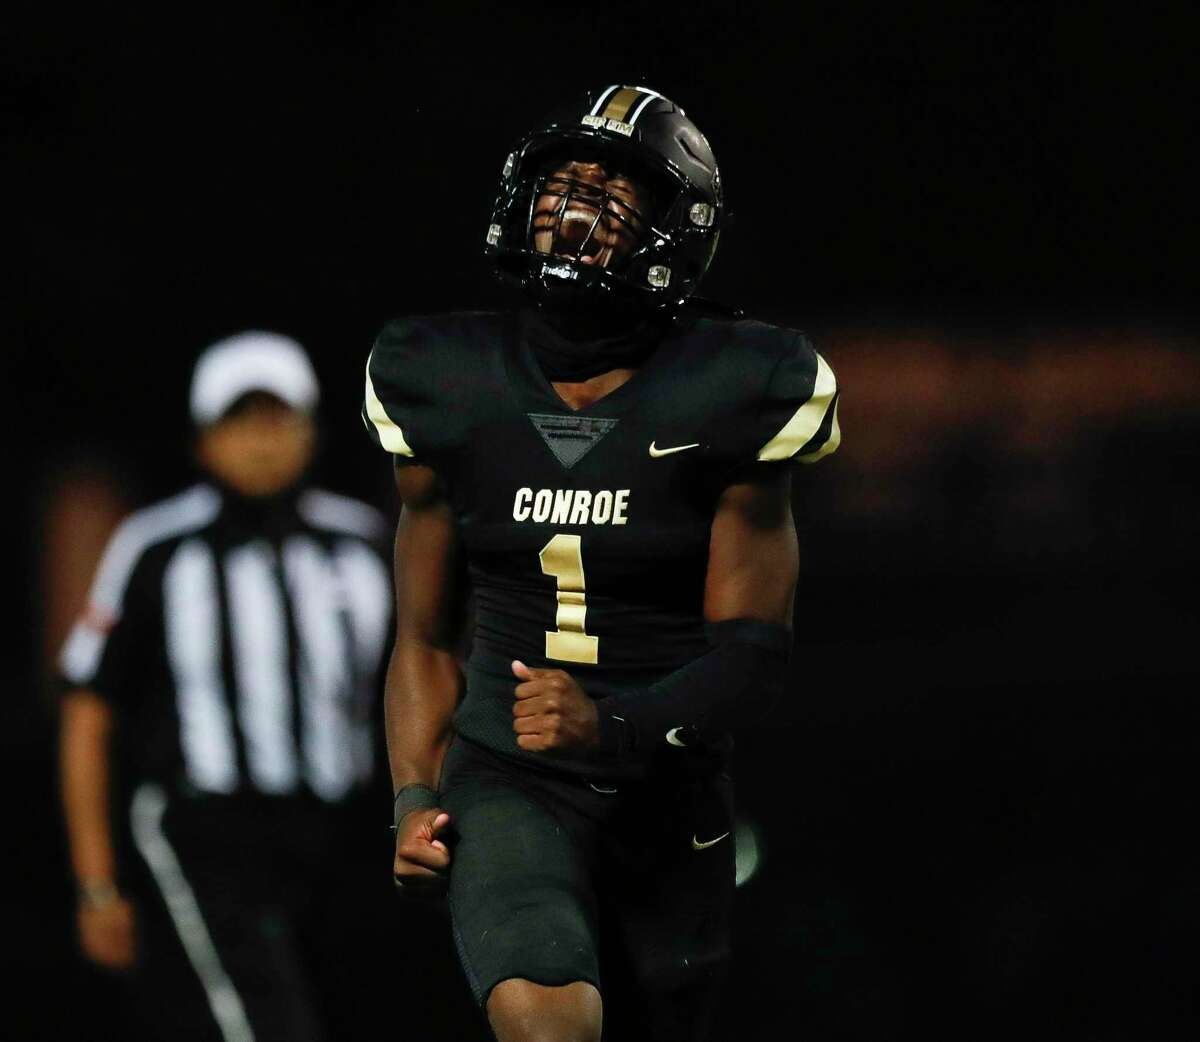 Conroe quarterback Jalen Williams (1), shown here last week against Kingwood, threw for two touchdowns and rushed for another against Summer Creek on Friday night.